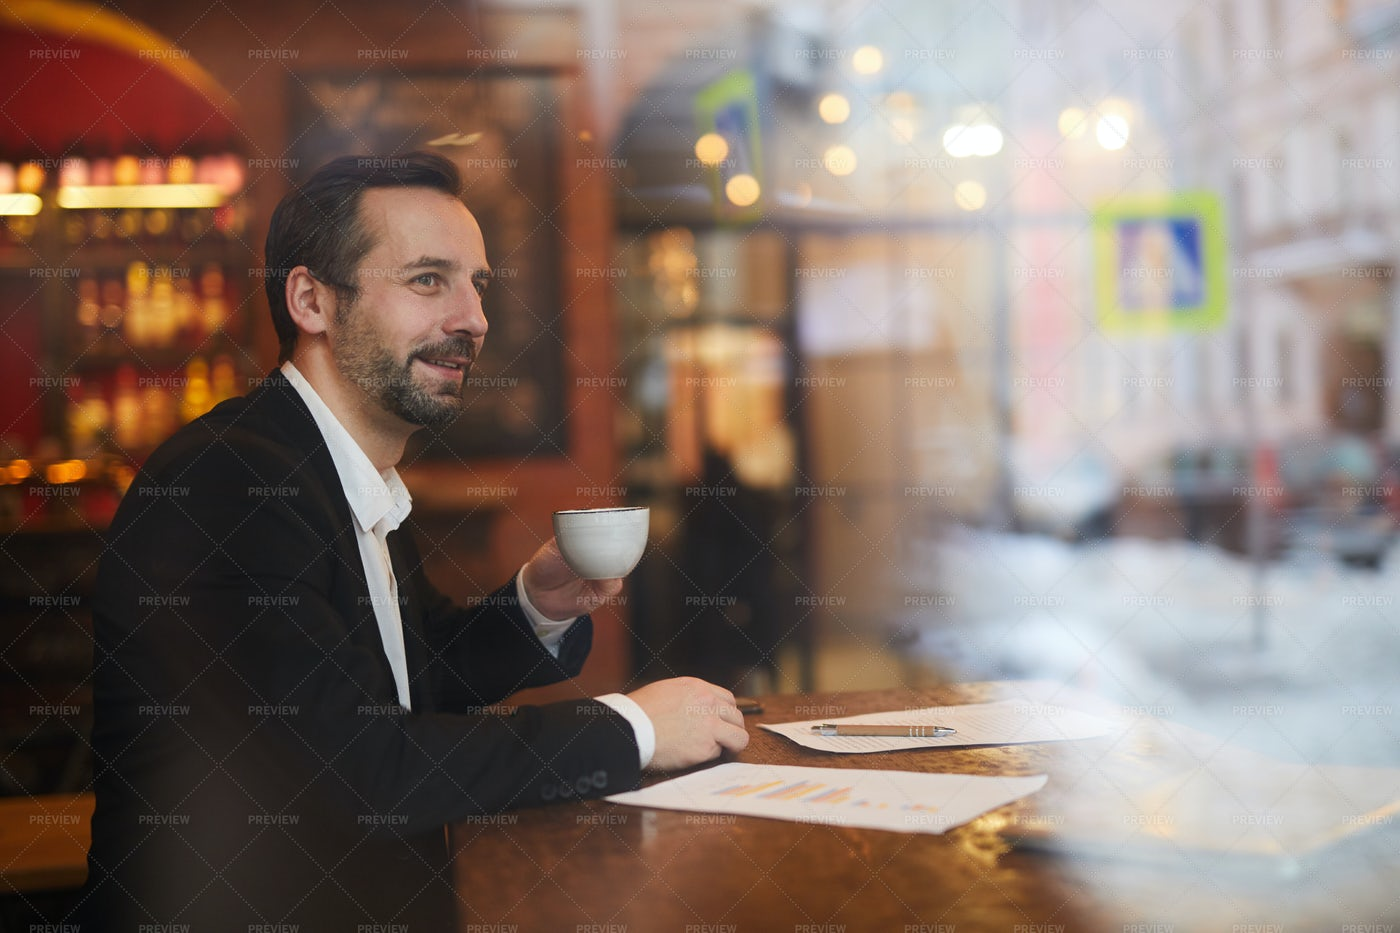 Pensive Businessman In Cafe: Stock Photos